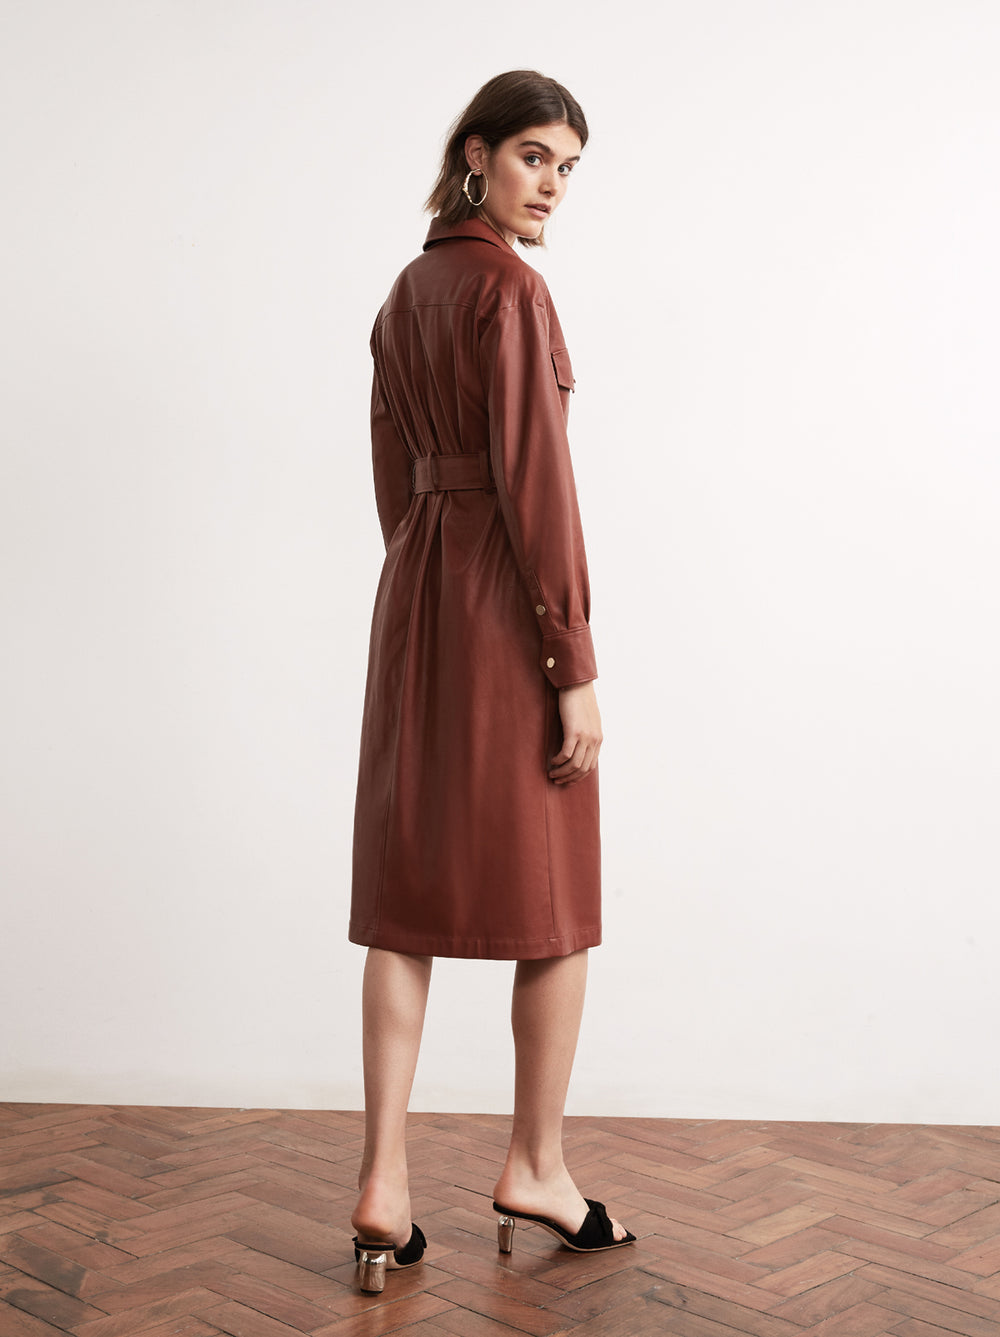 Jacqueline Tobacco Vegan Leather Shirt Dress by KITRI Studio